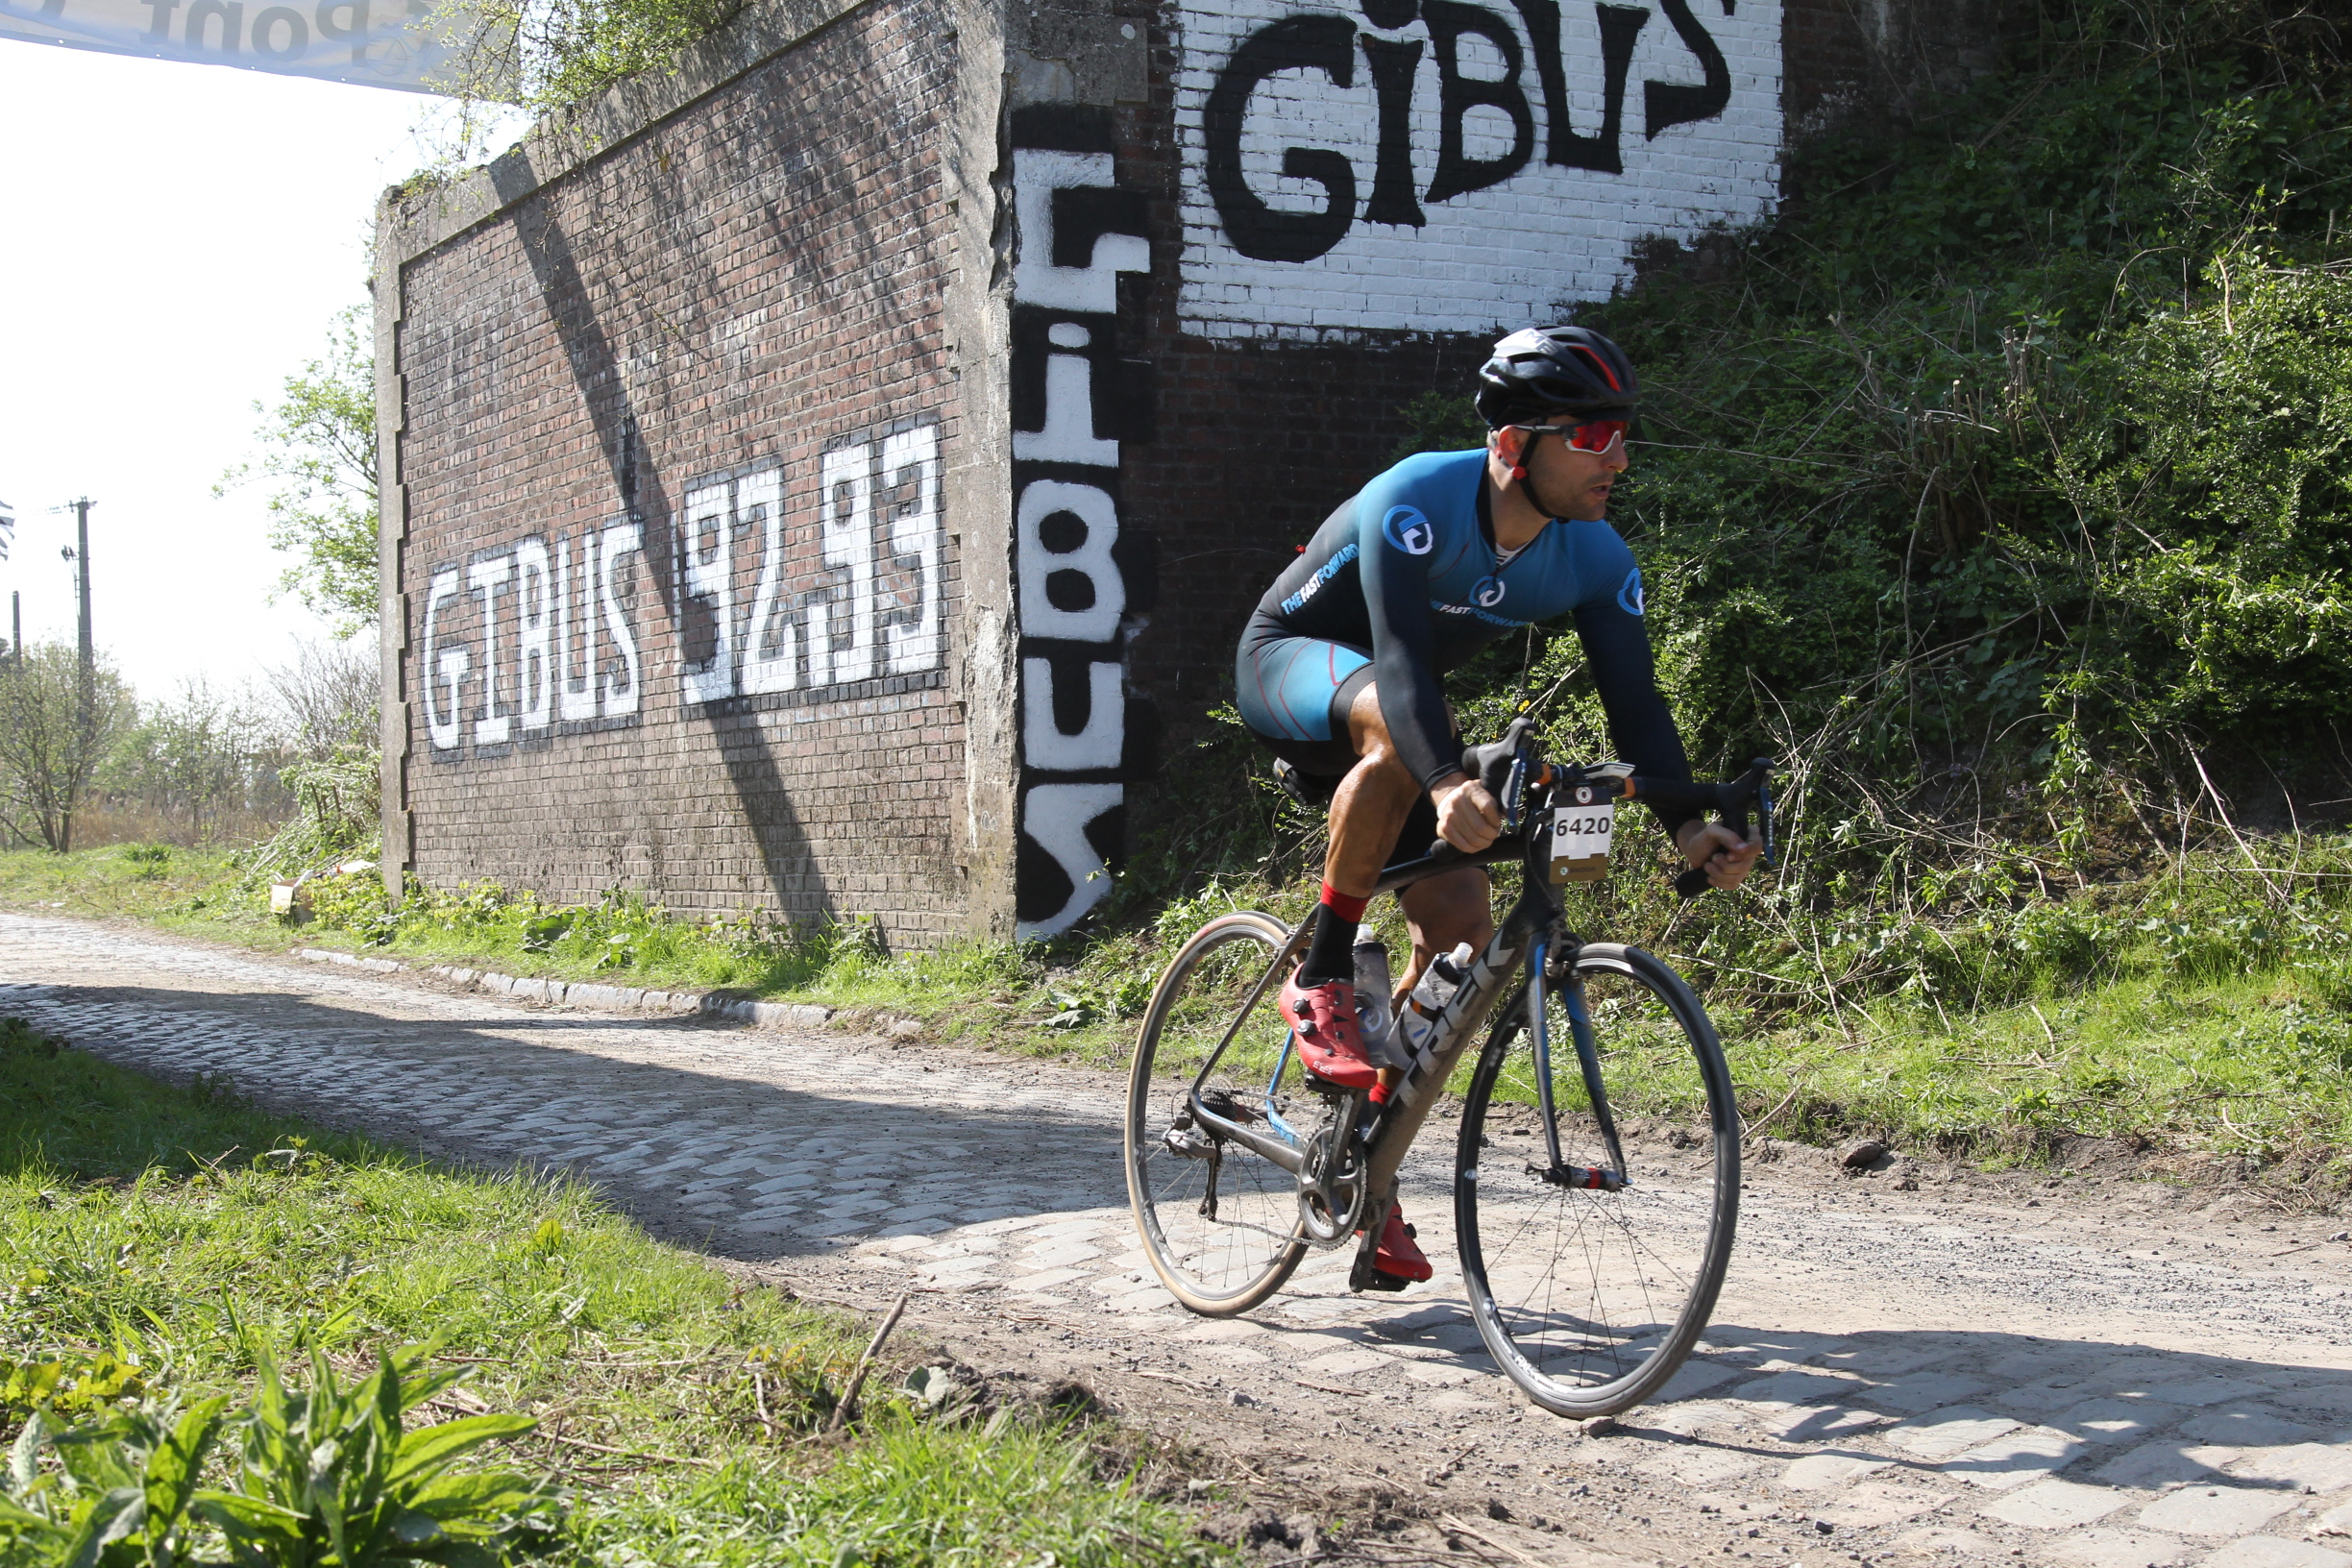 Combining my skill sets of fitness and bike handling on the cobbles of Paris-Roubaix = bliss vs pain and suffering for hours.